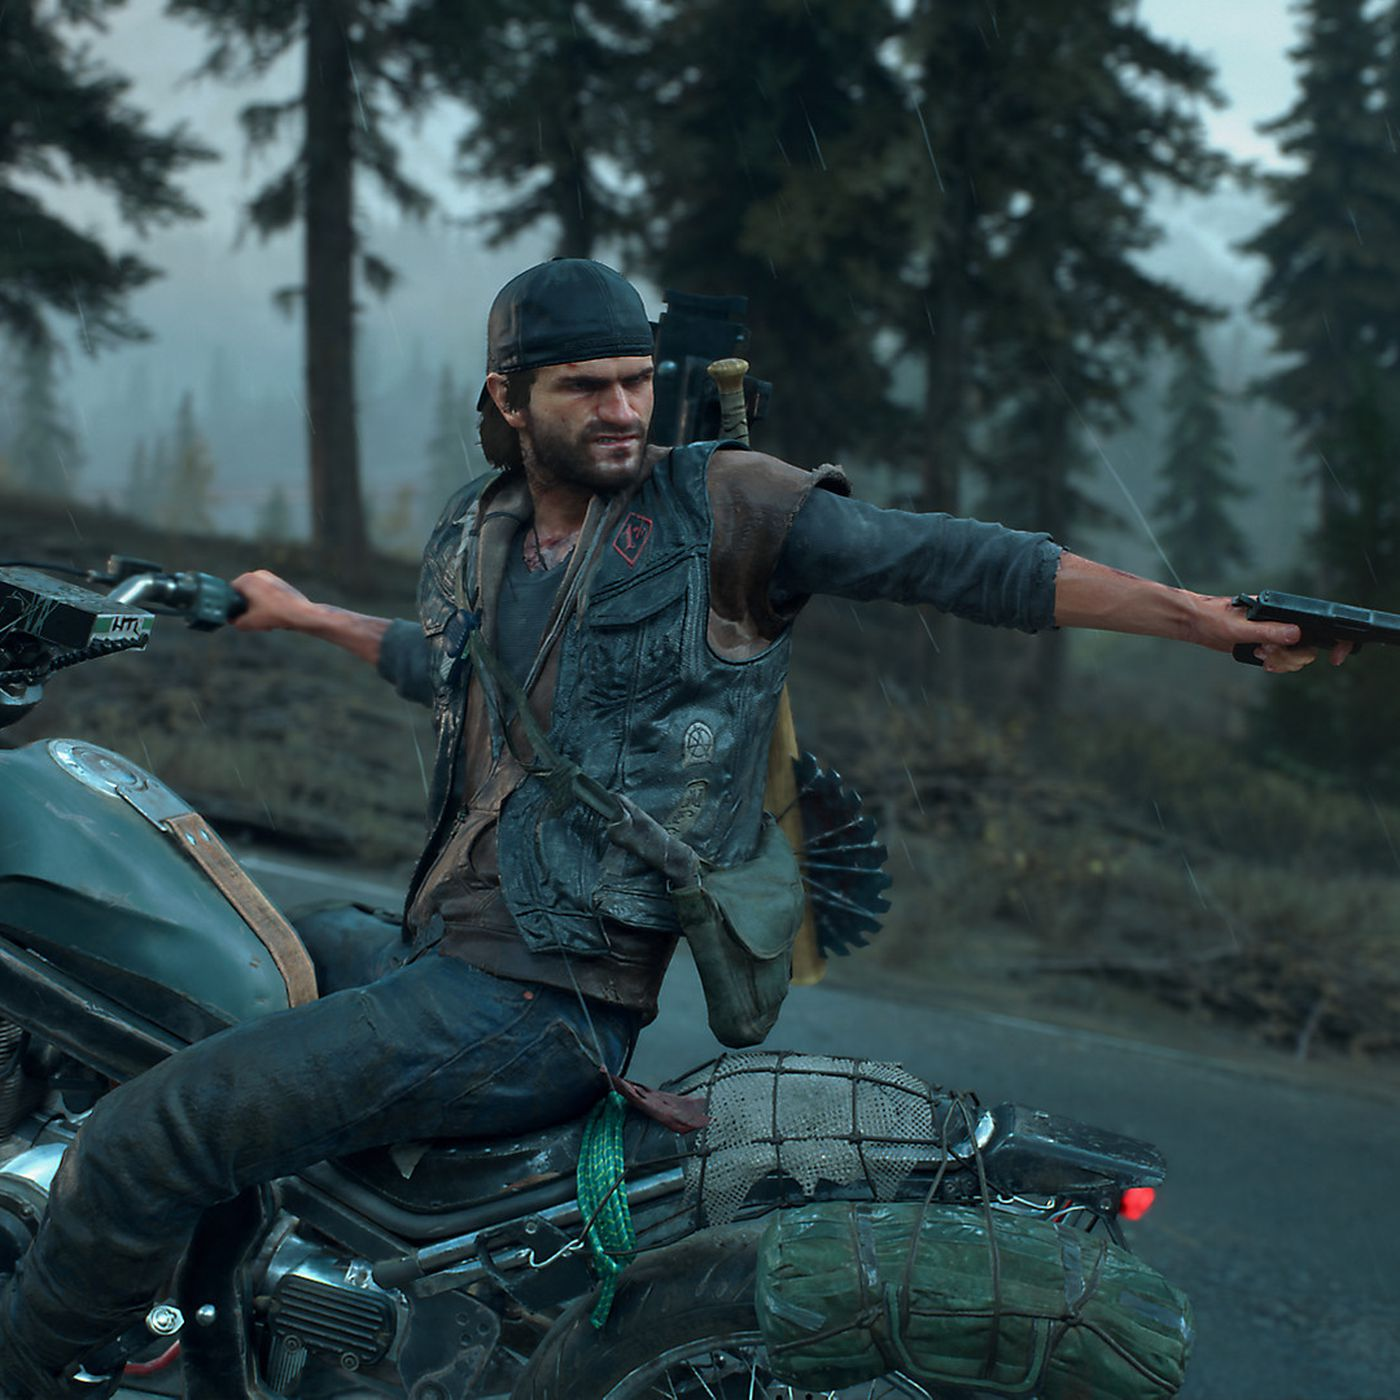 Sony Says Amazon Listings For Pc Versions Of Days Gone Gran Turismo Not Accurate Polygon